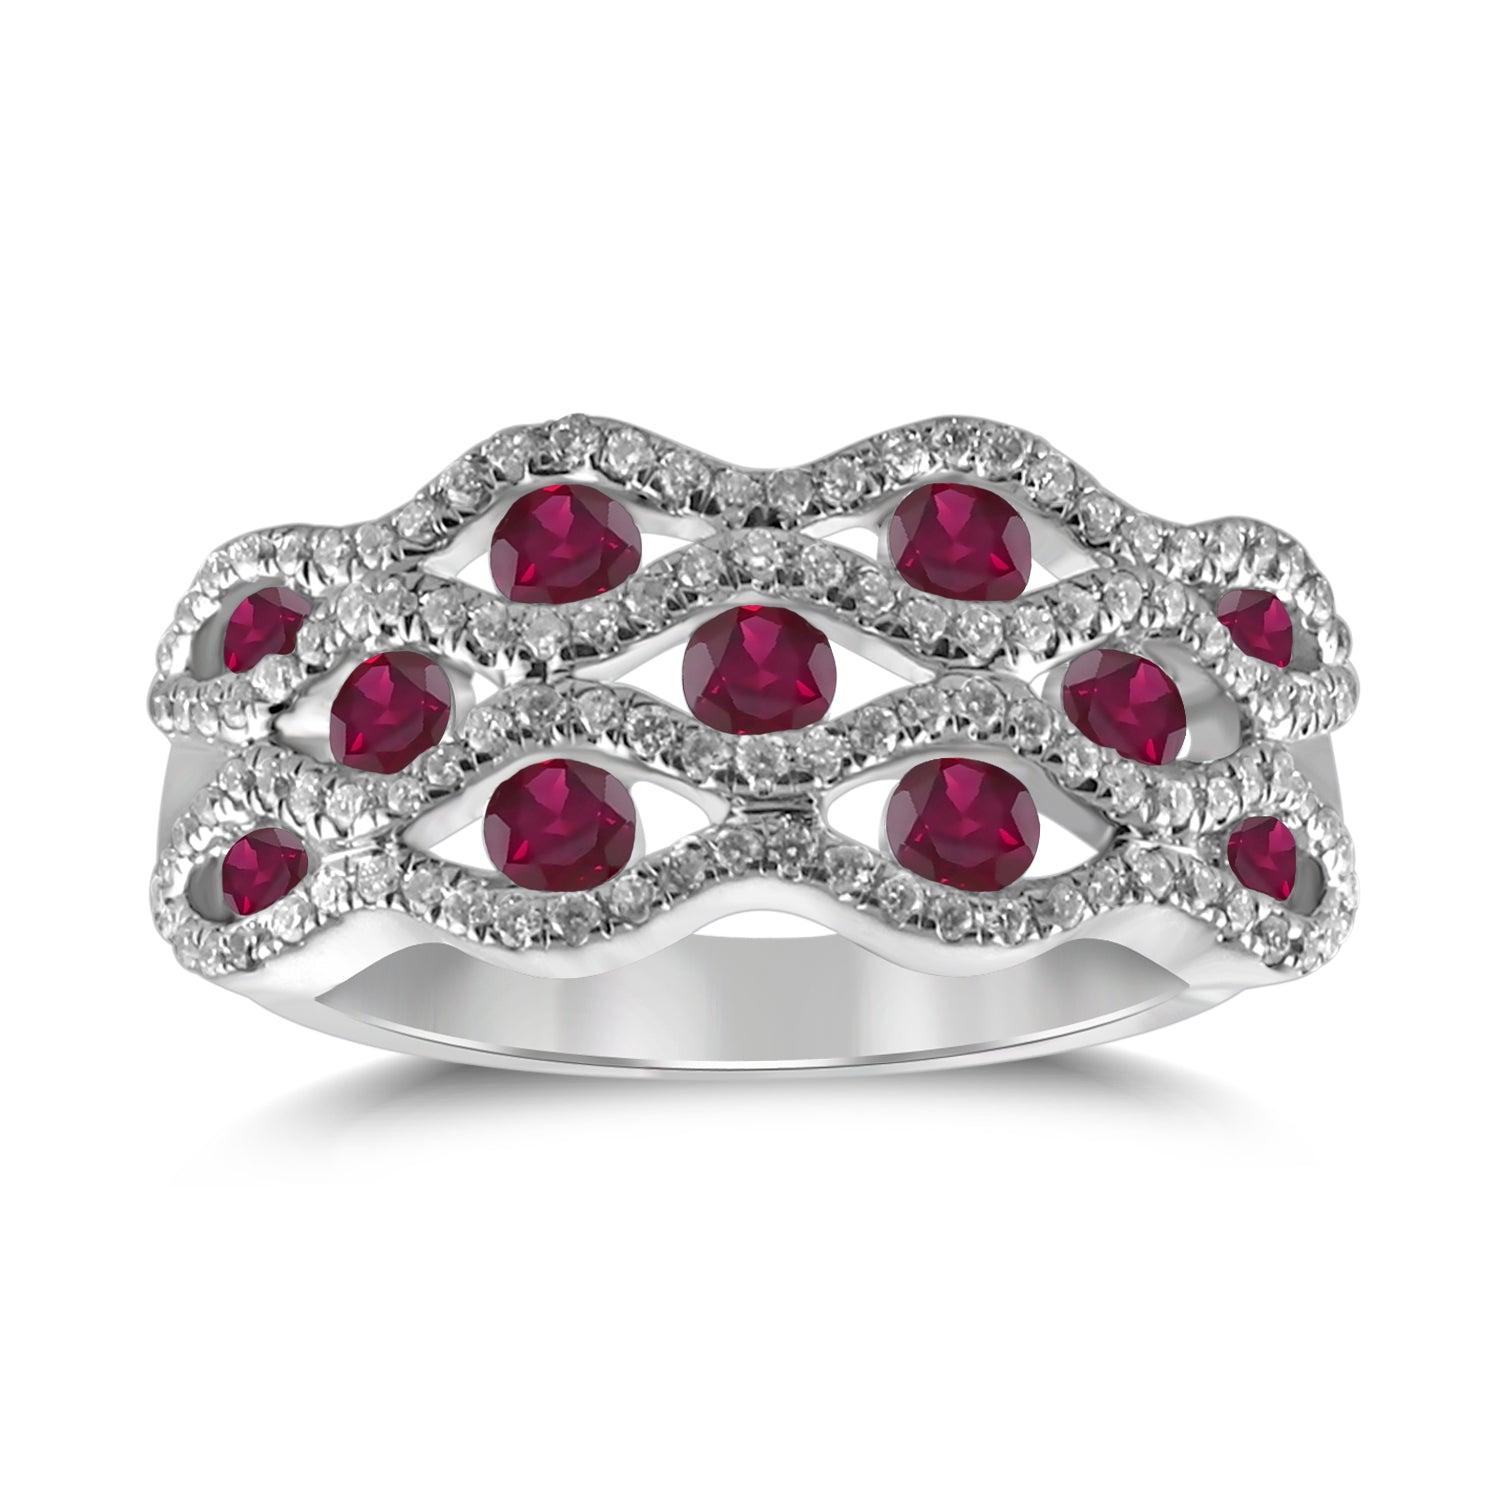 Gemma - Dome Top Diamond & Gemstone Band - Certified